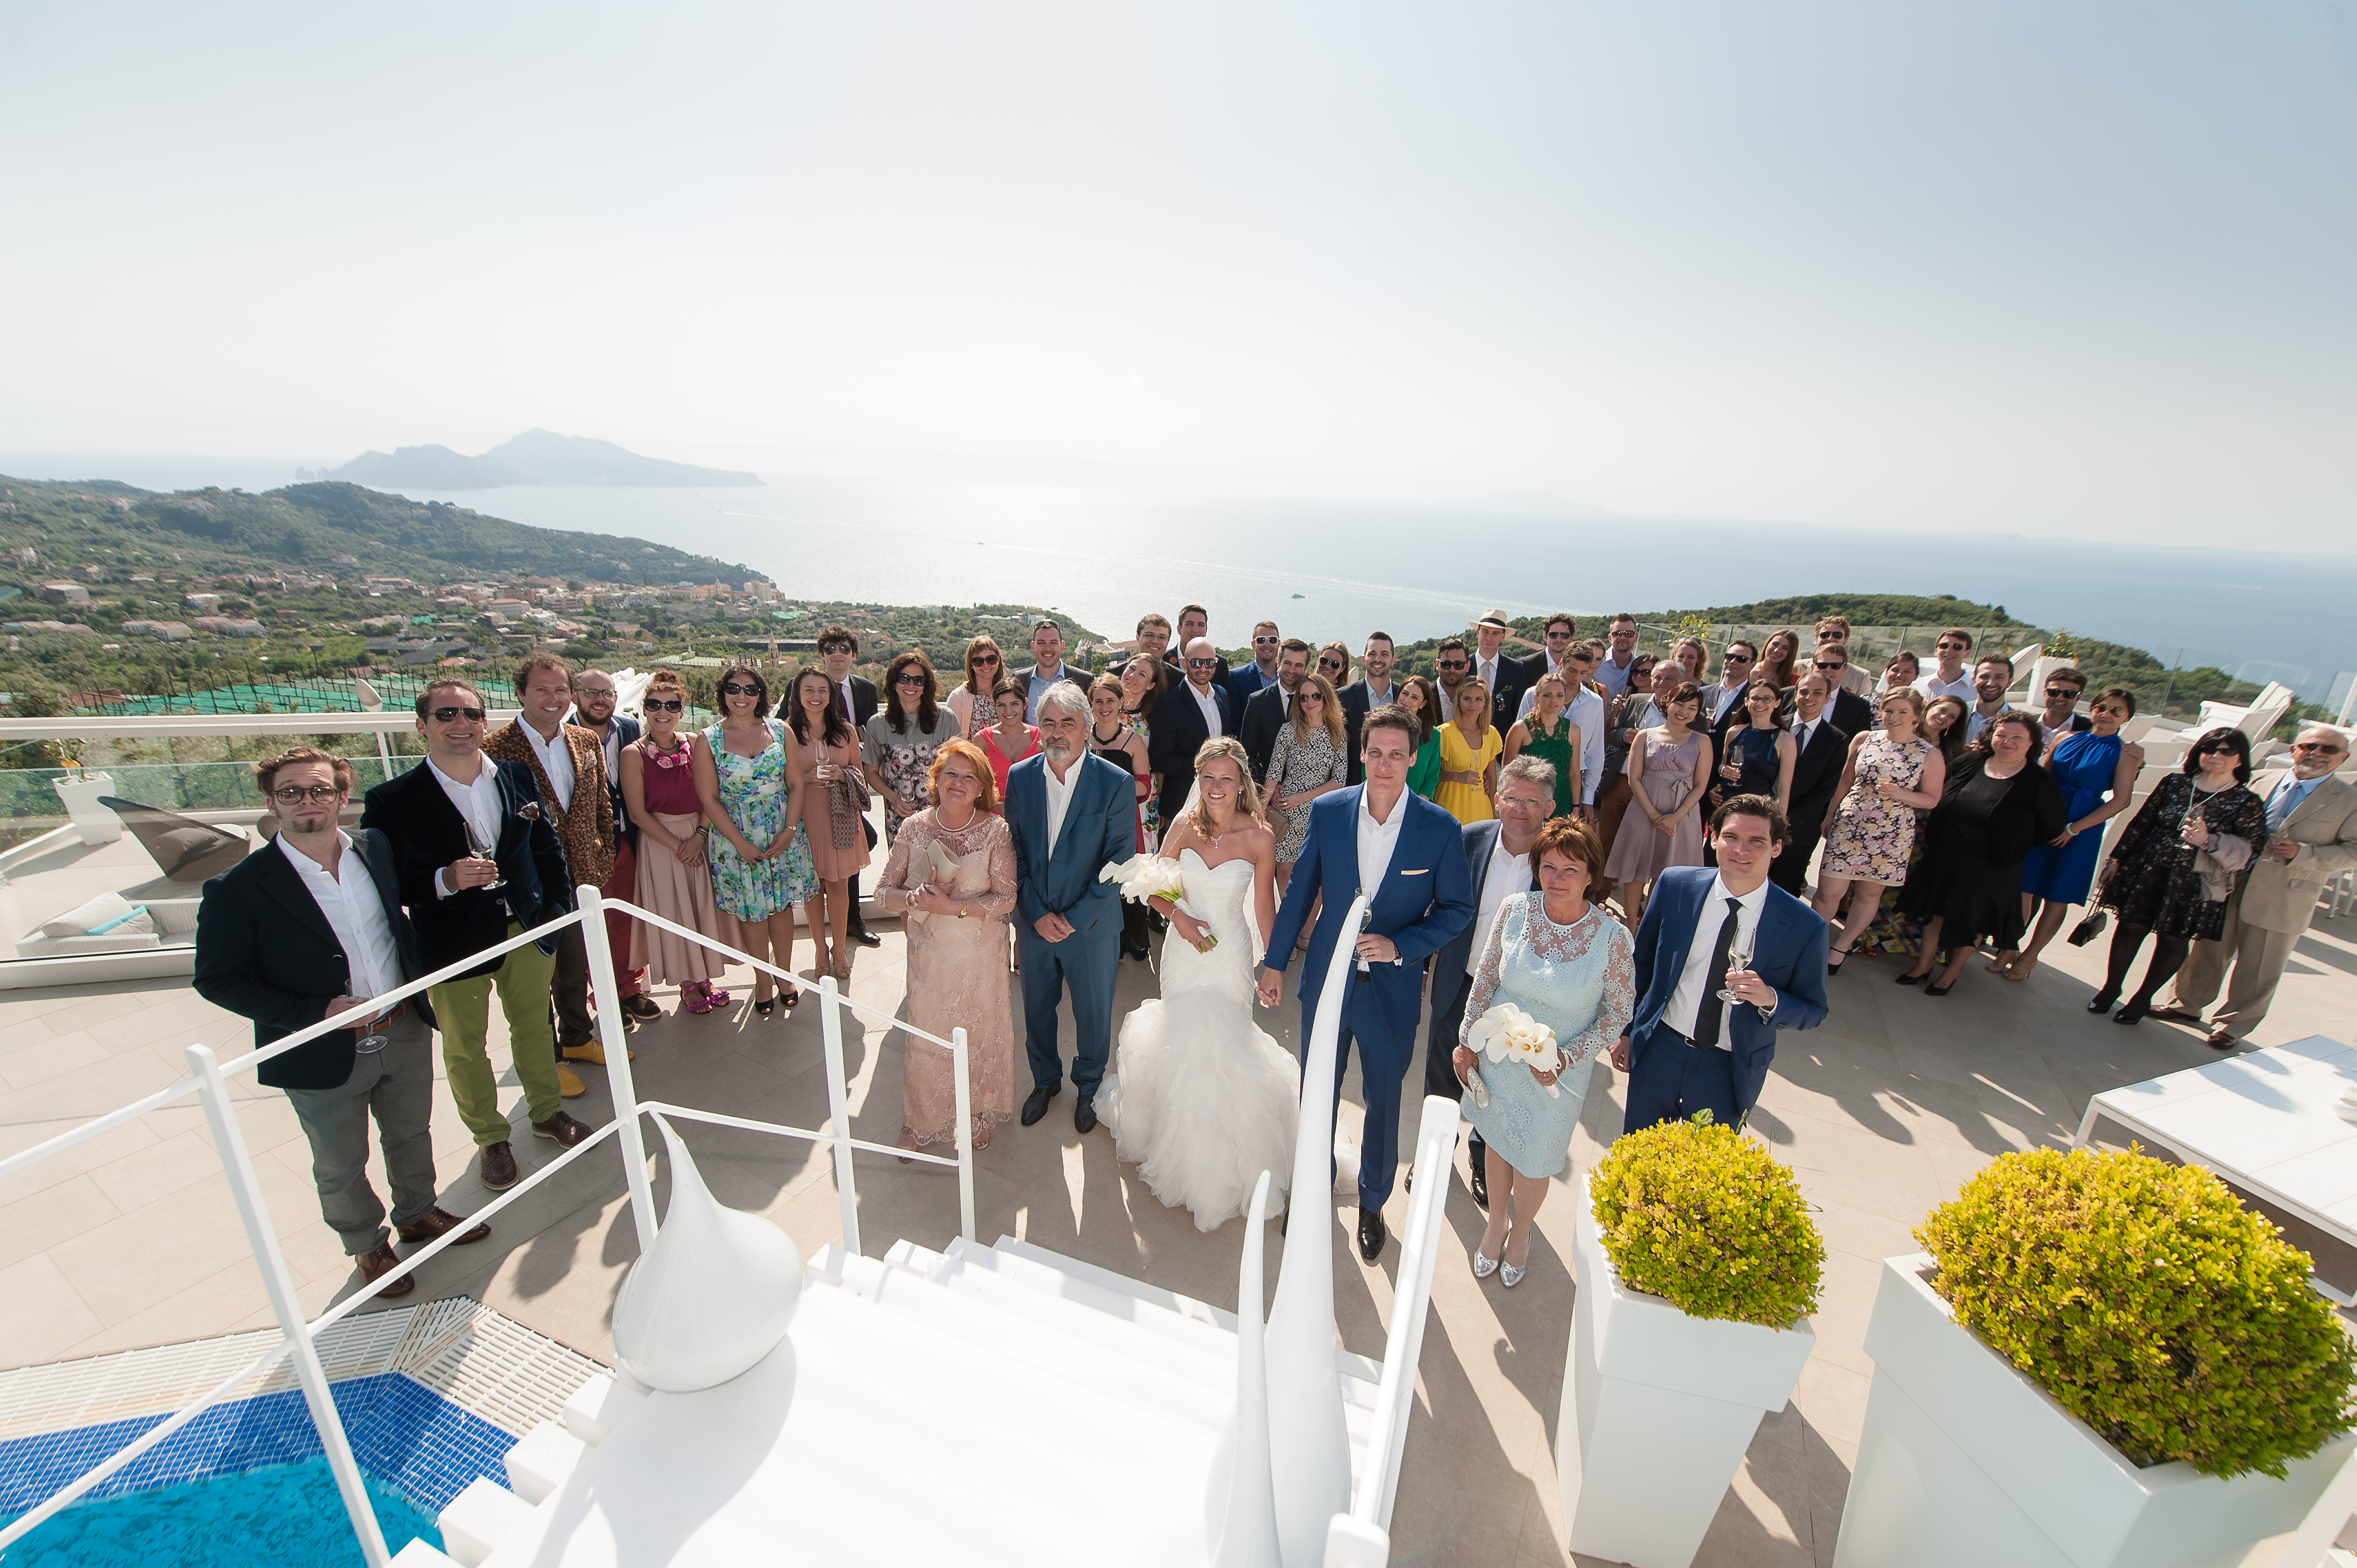 Wedding in a Villa Amalfi Coast